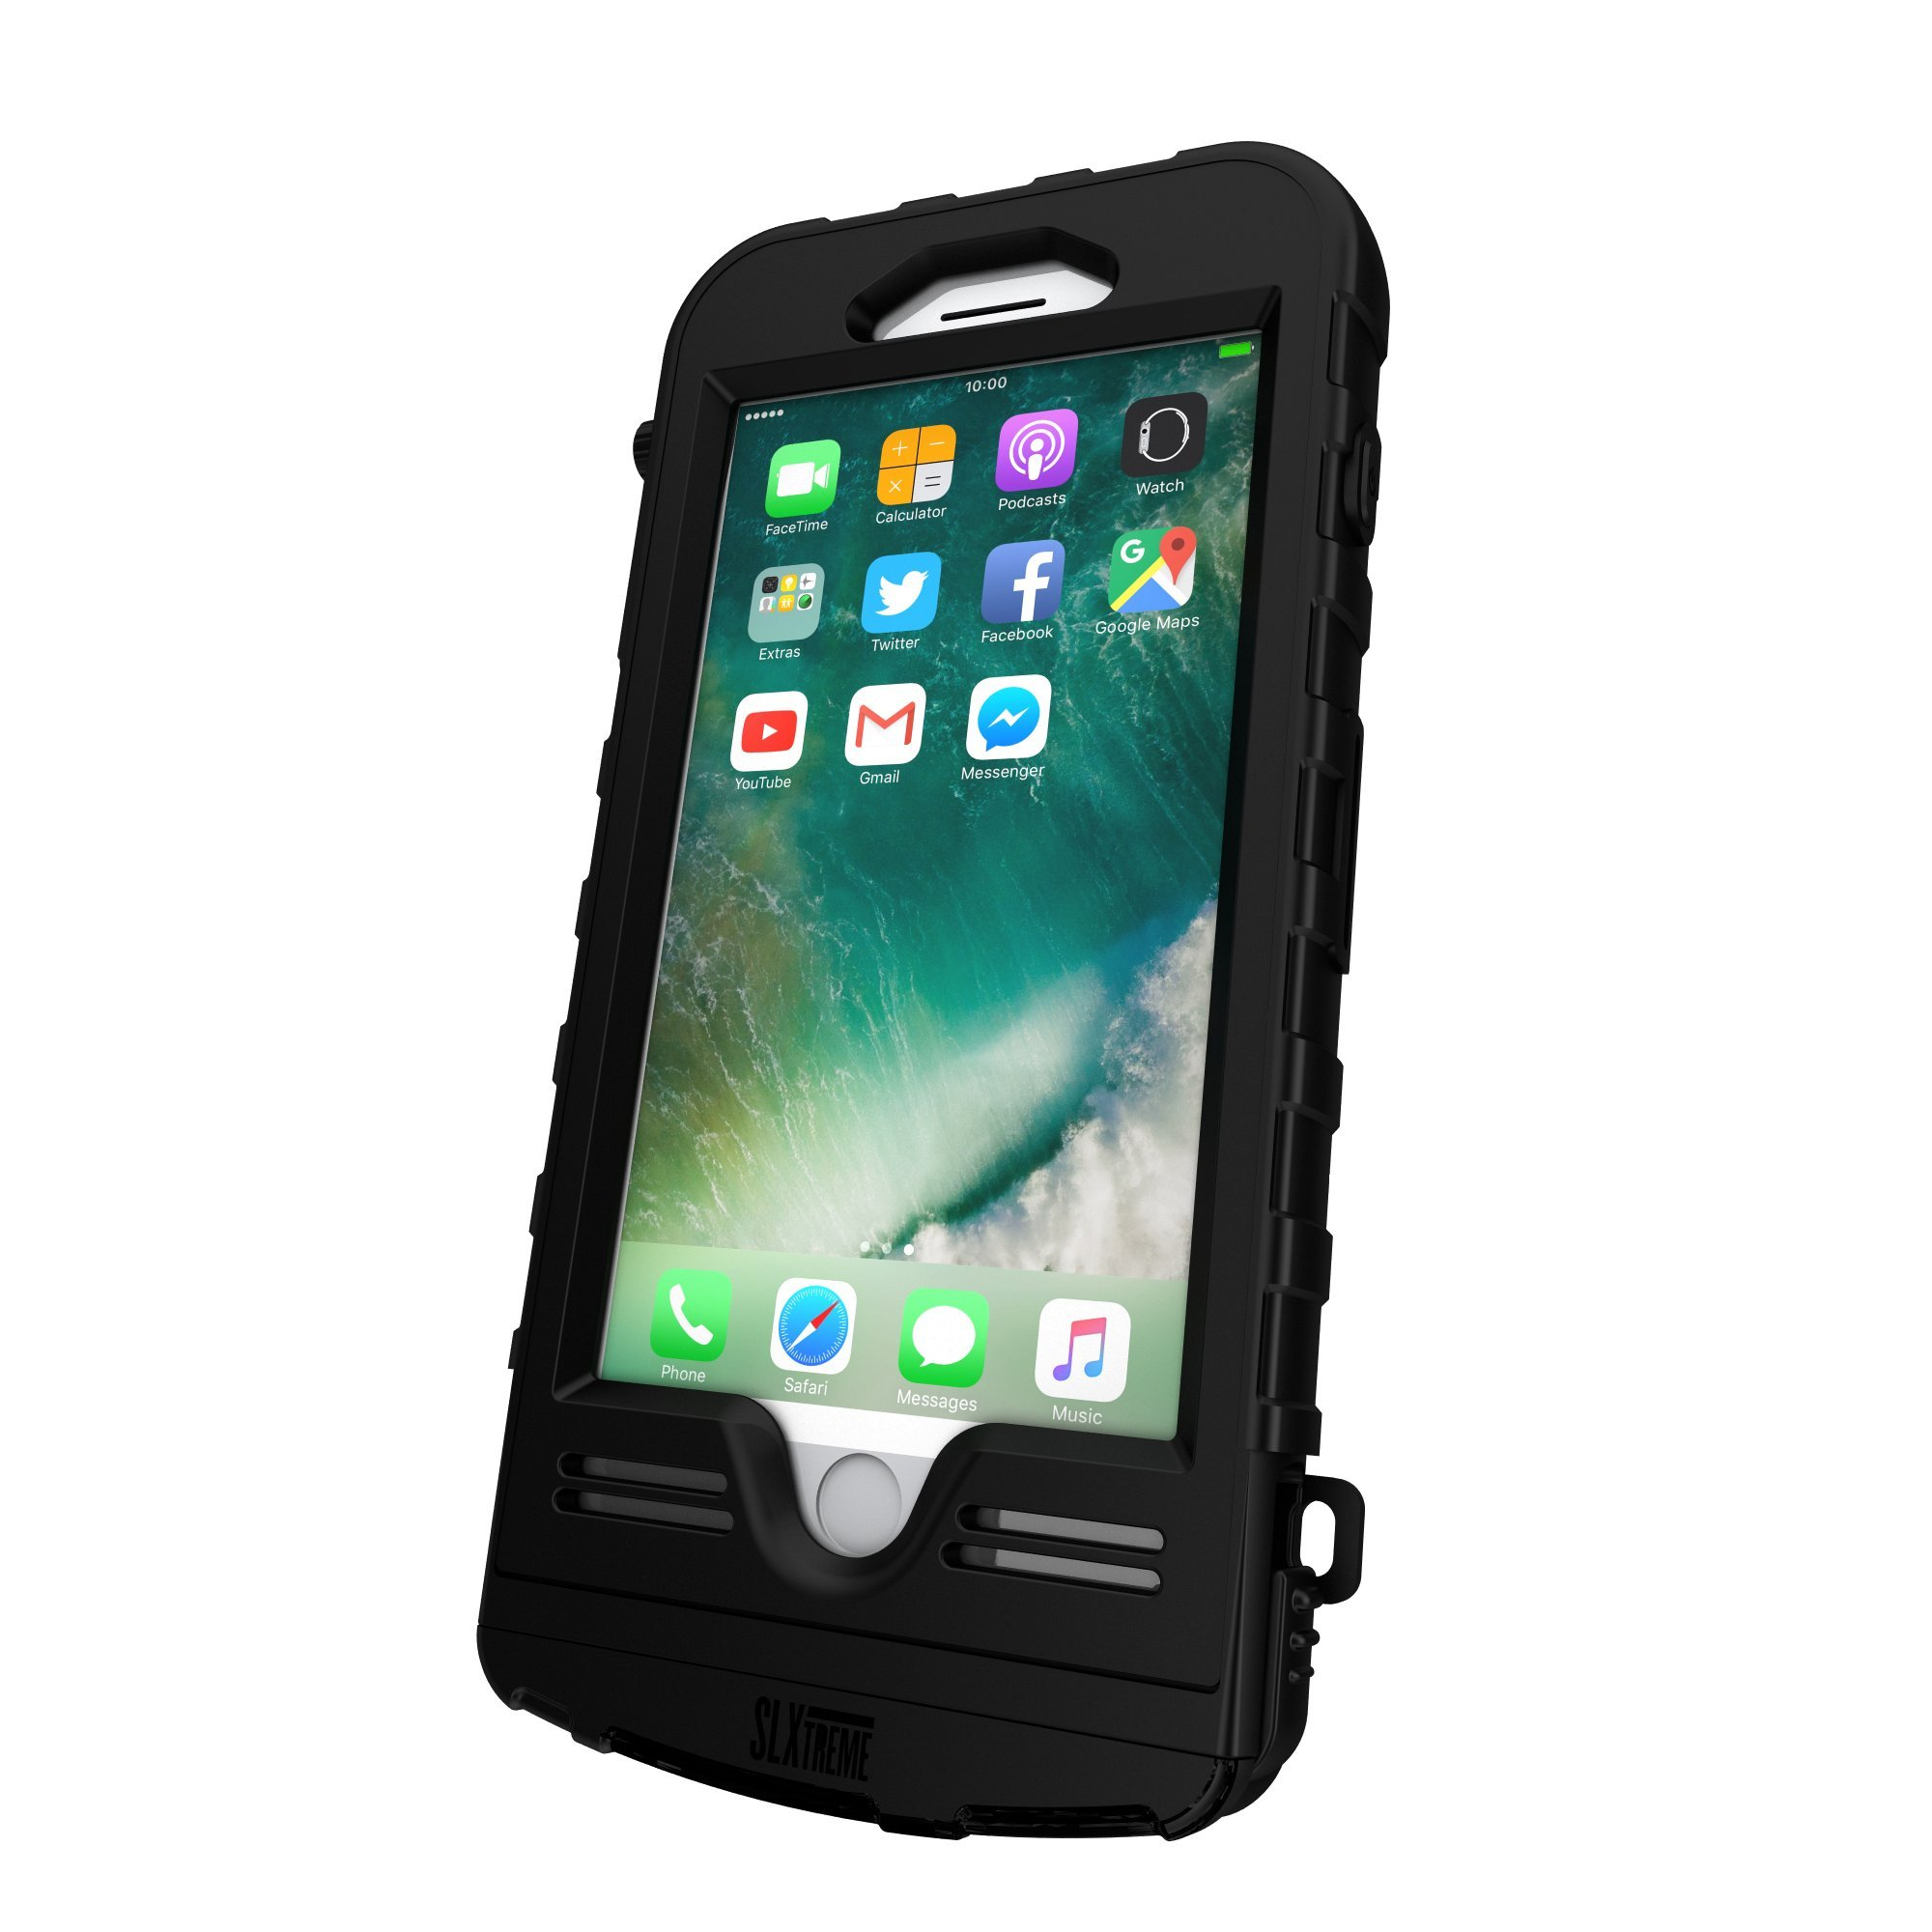 SnowLizard SLXtreme iPhone 8 Plus Case. Solar Powered, Rugged and Waterproof with a built in Battery - Night Black by Snow Lizard Products (Image #4)